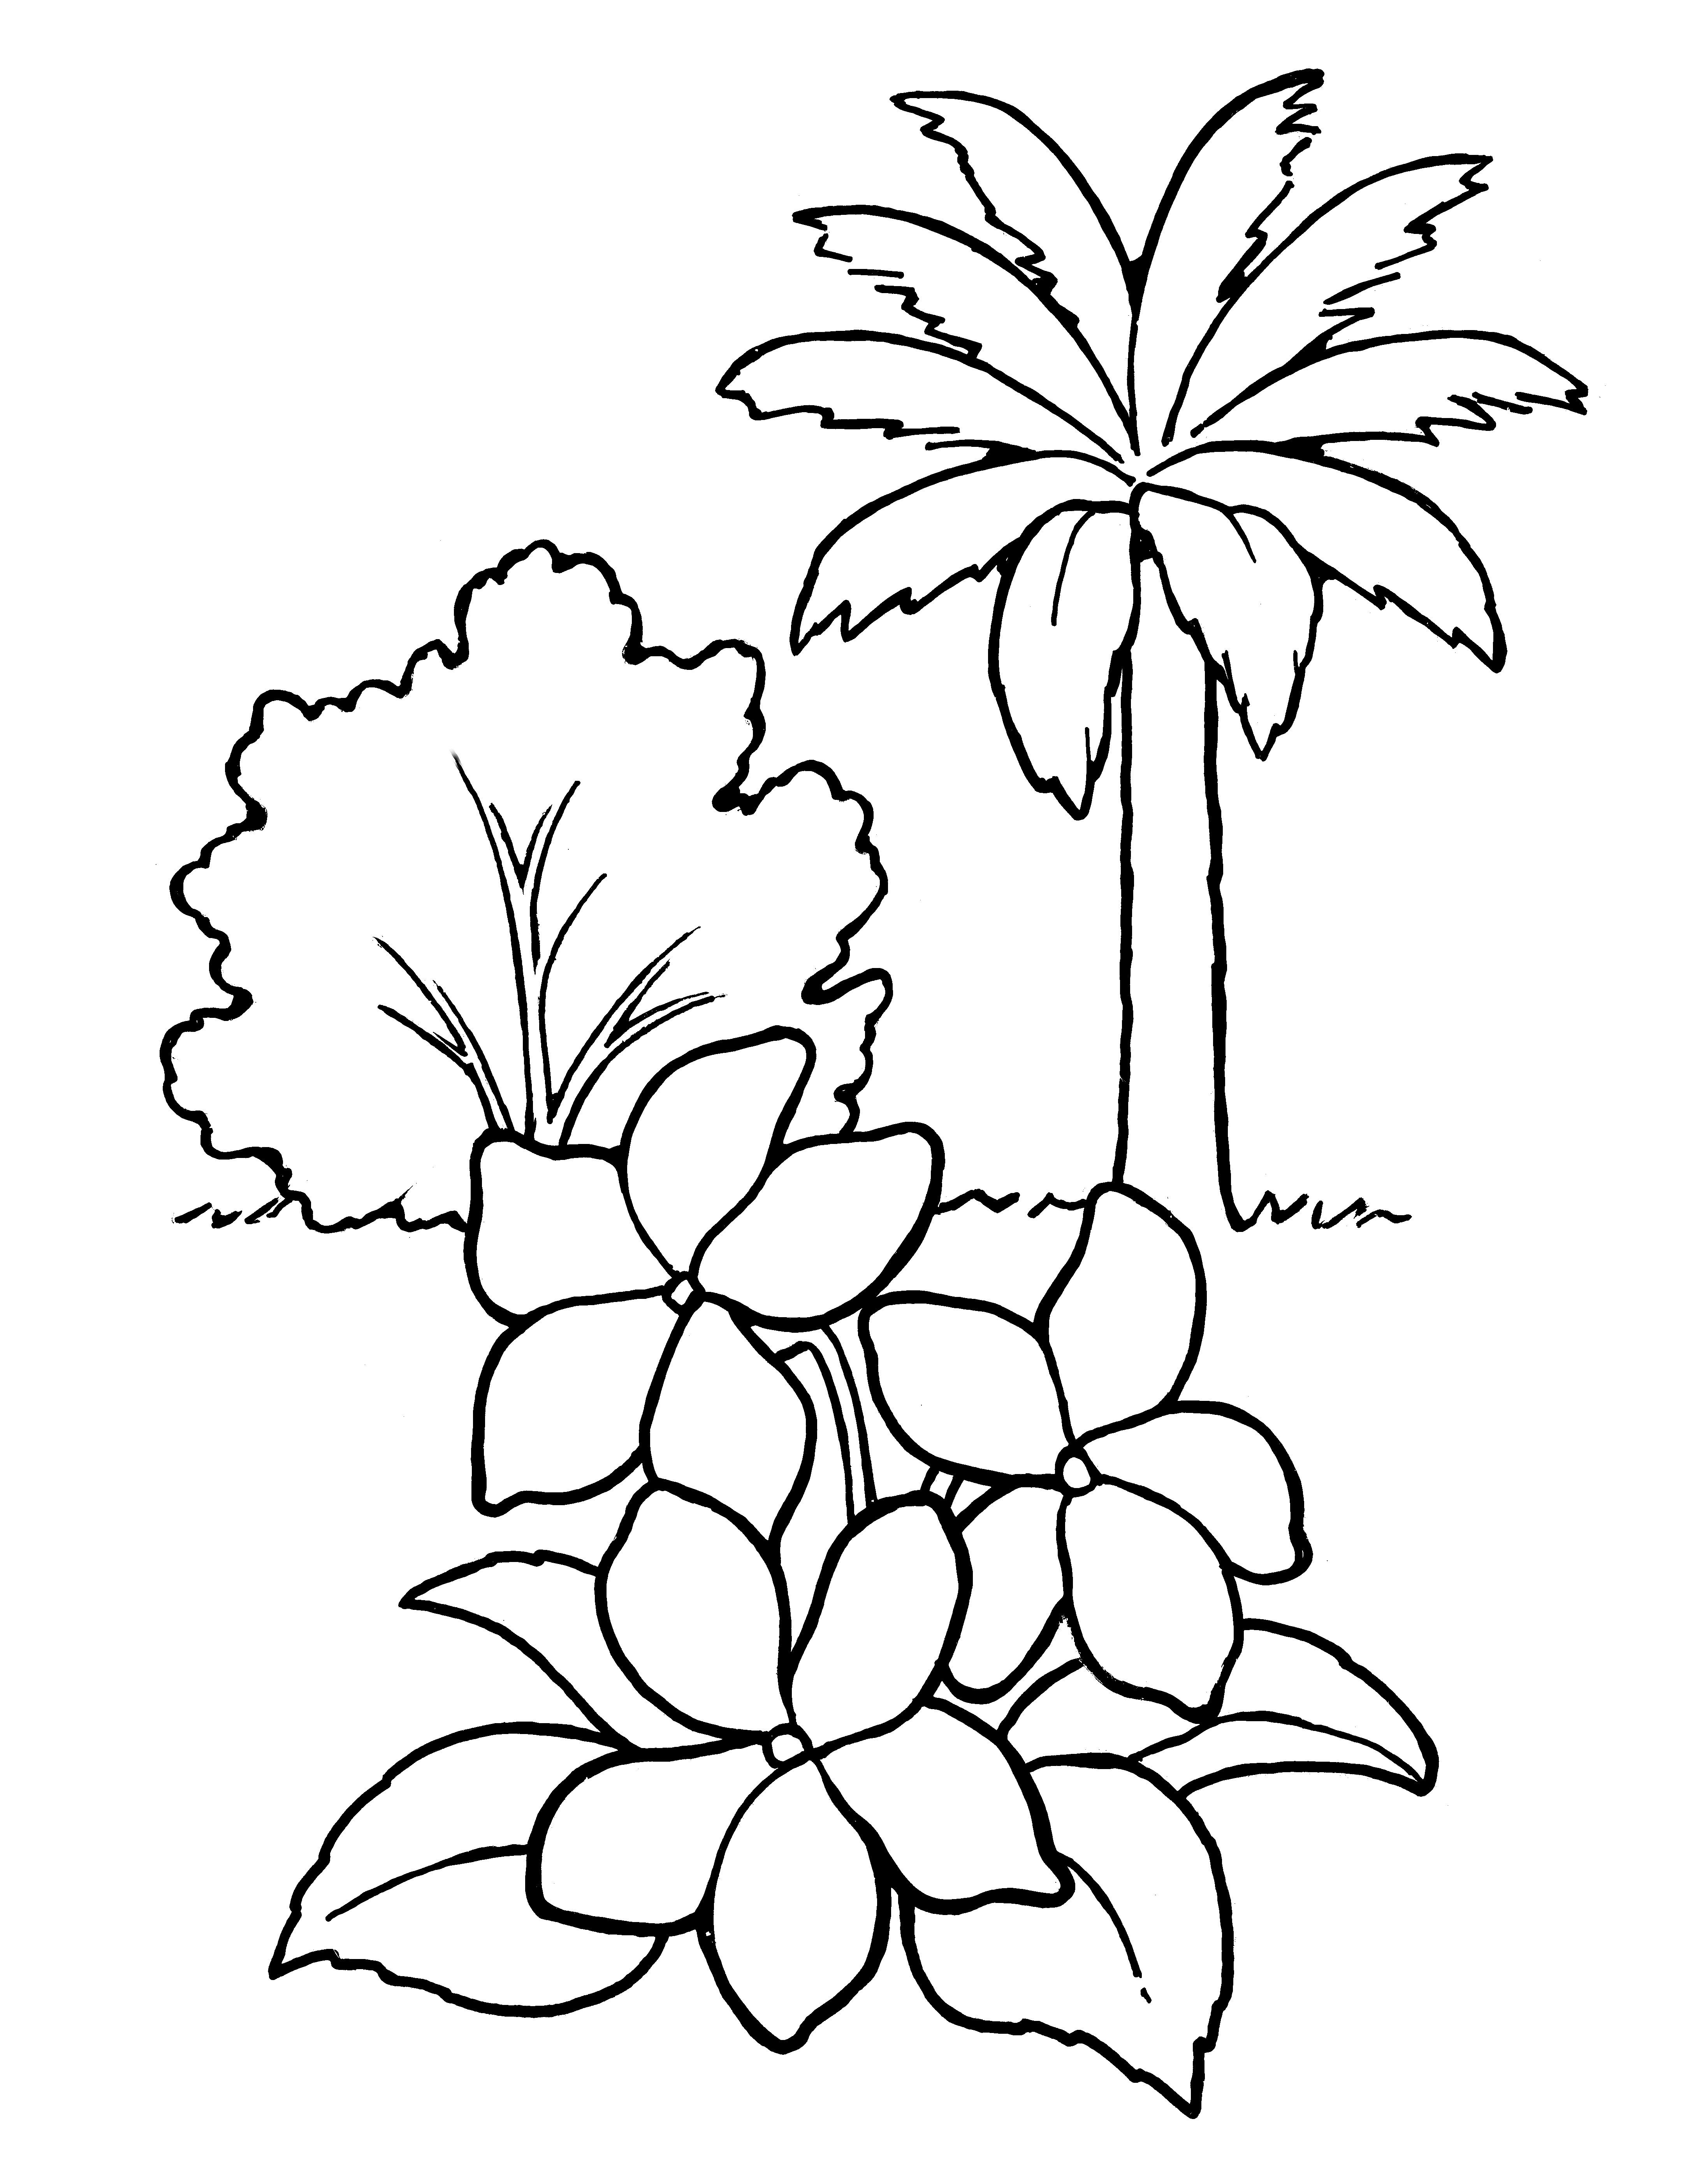 A line drawing of plants and trees from the nursery manual, Behold Your Little Ones (2008), page 35.